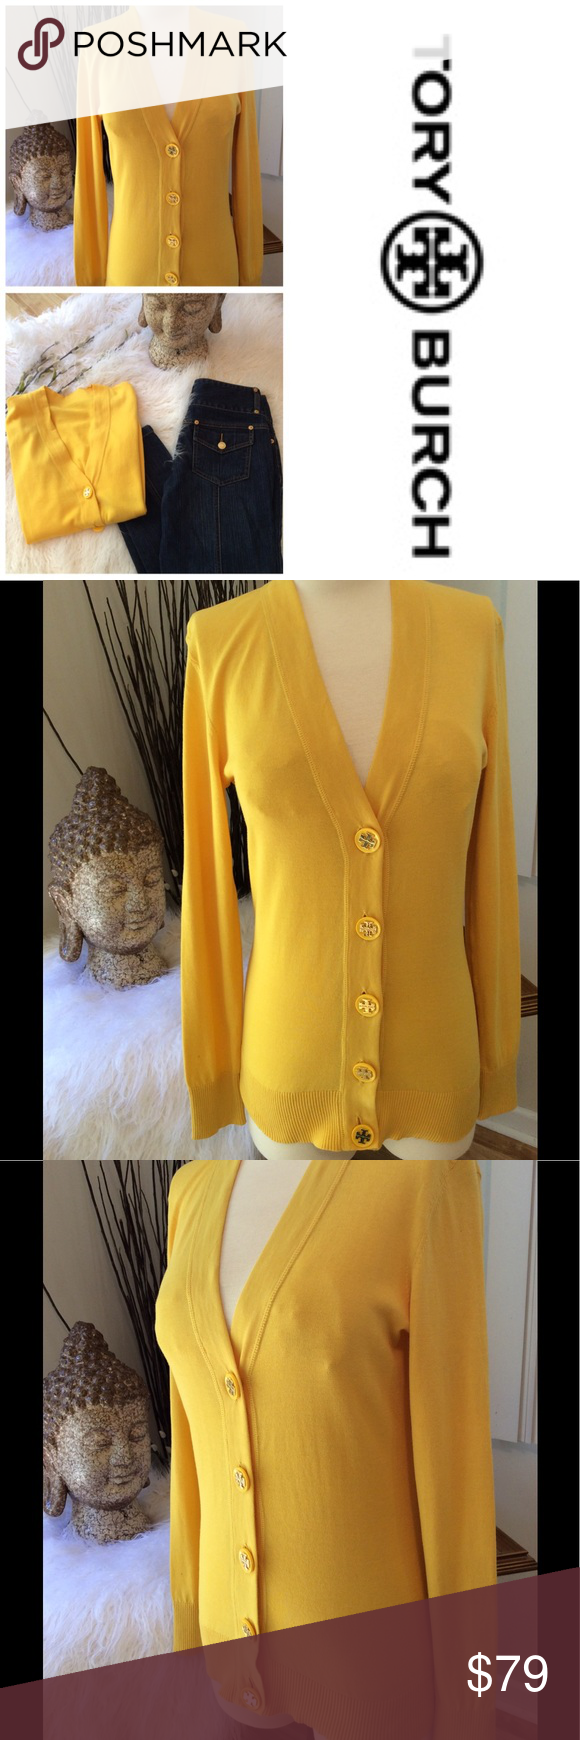 TORY BURCH Canary Yellow Cardigan | Yellow cardigan and Cotton